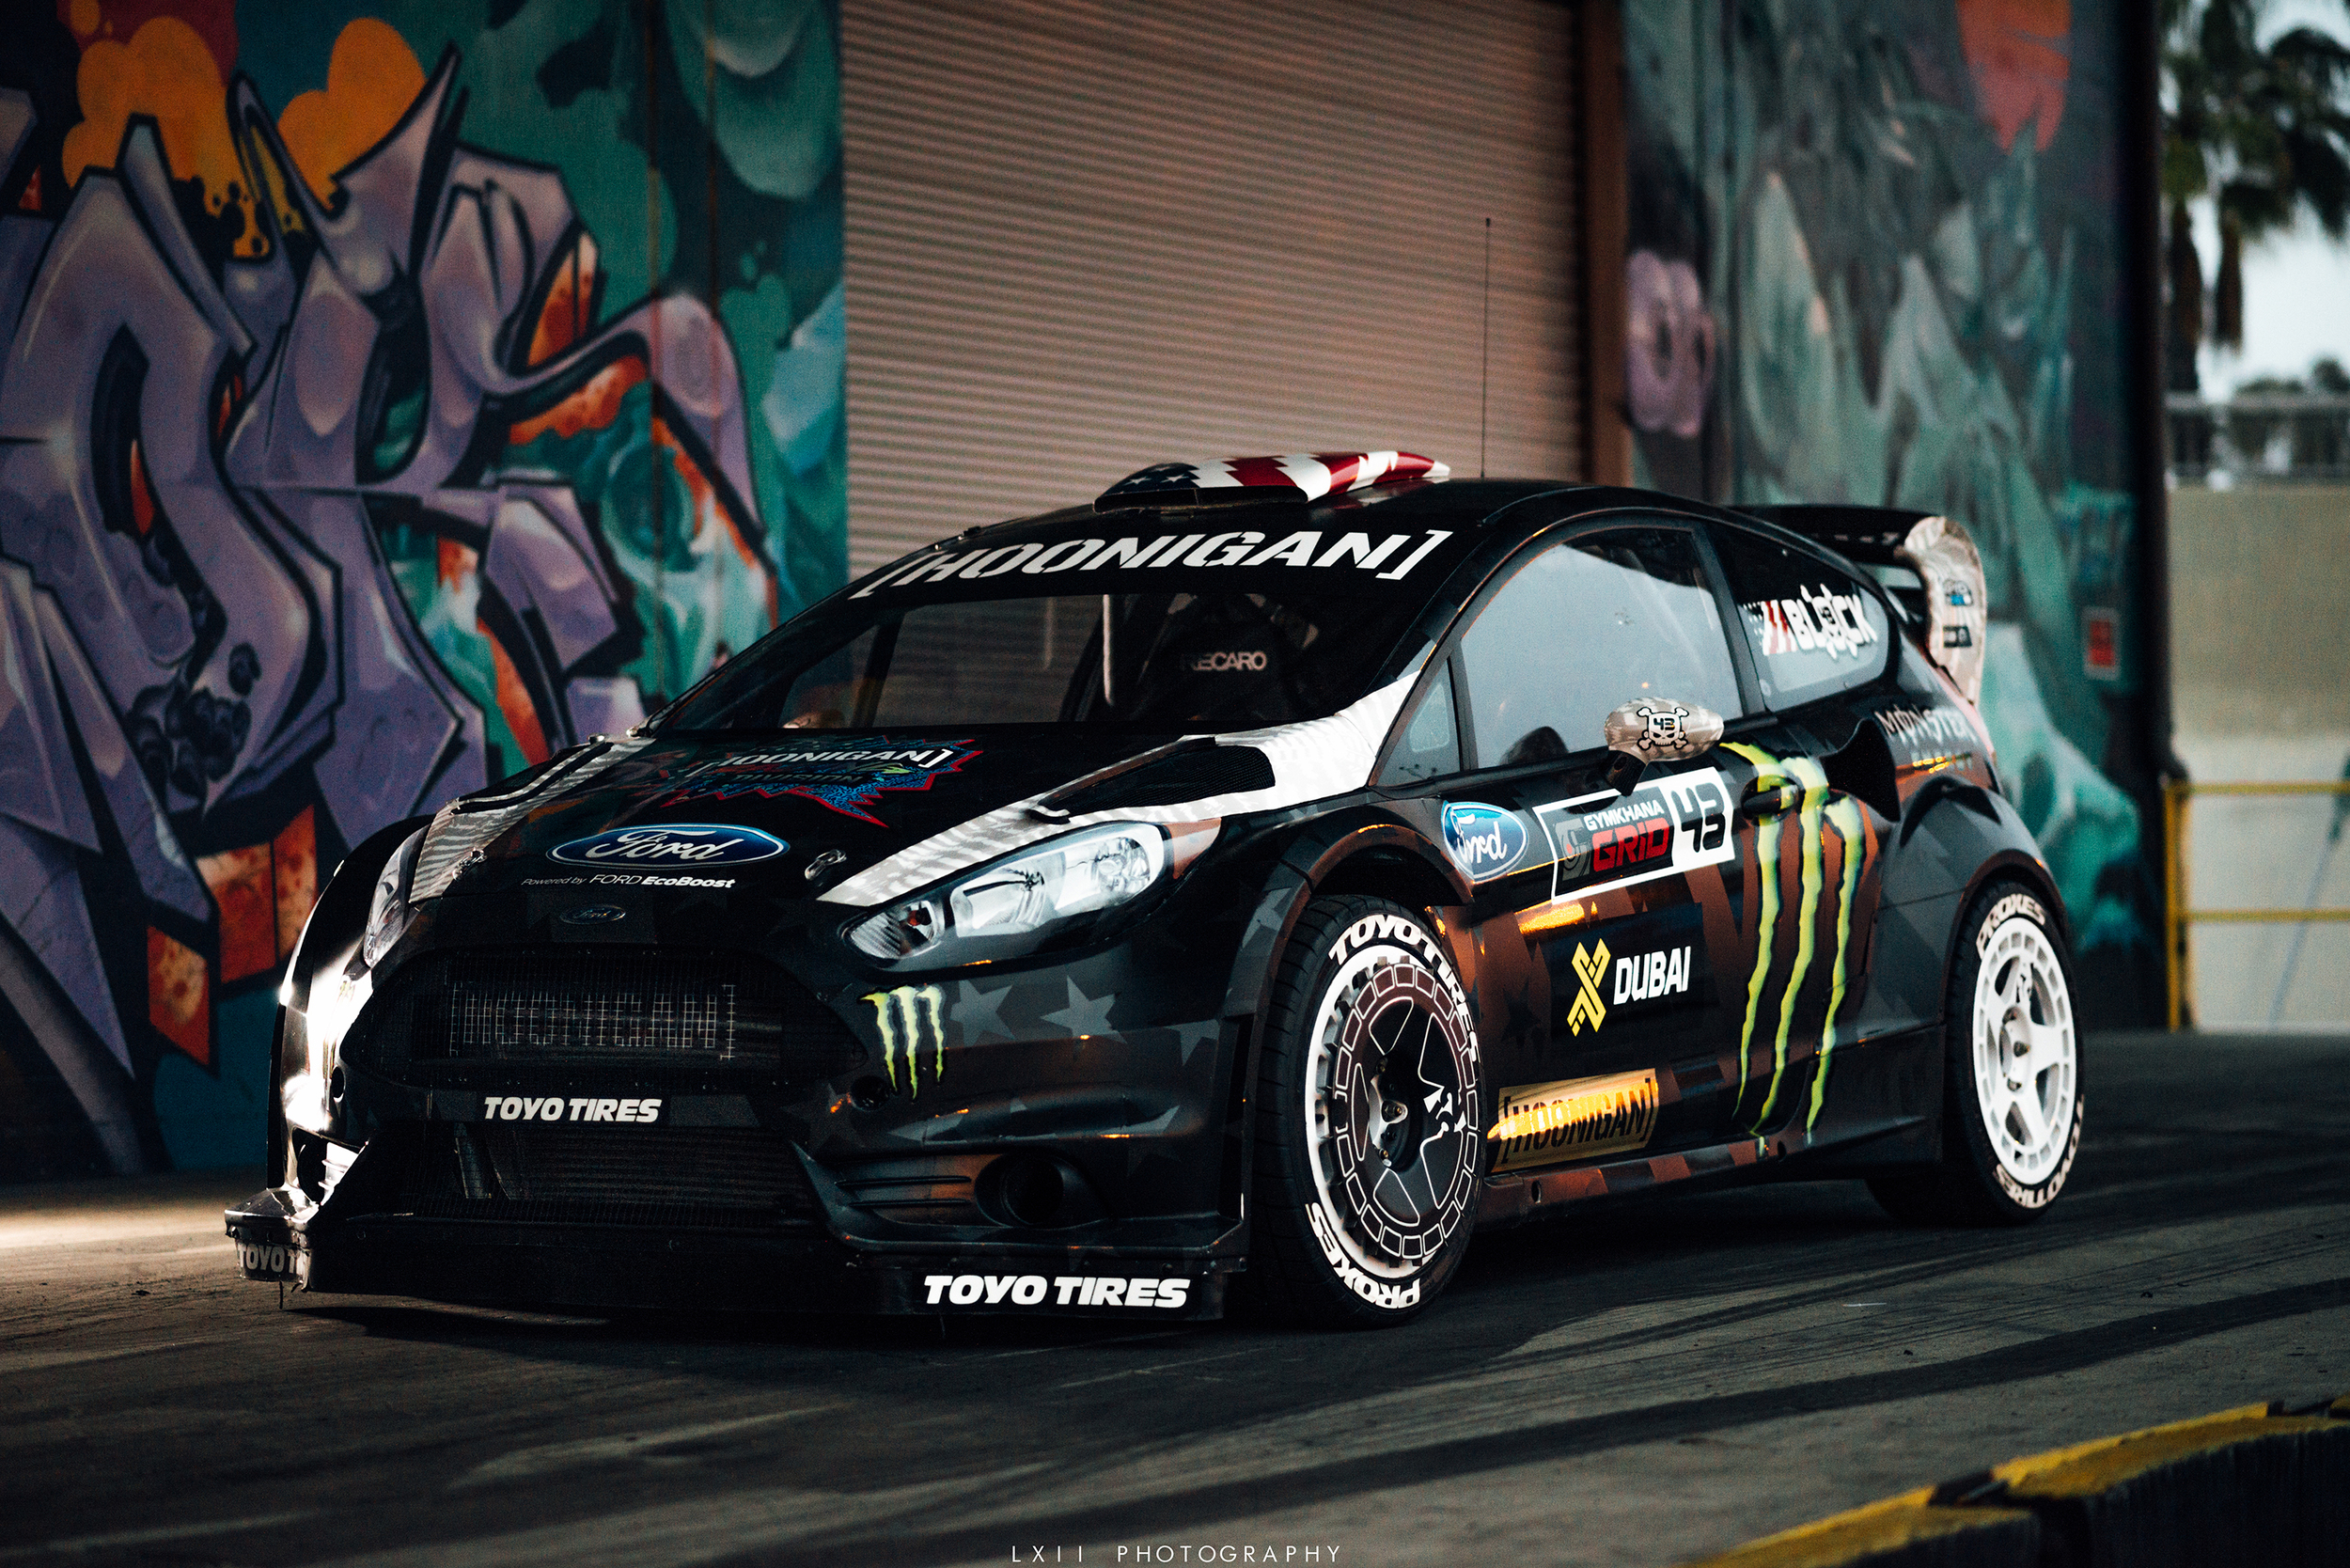 Light Painting Ken Block's Ford Fiesta with OMGDrift!